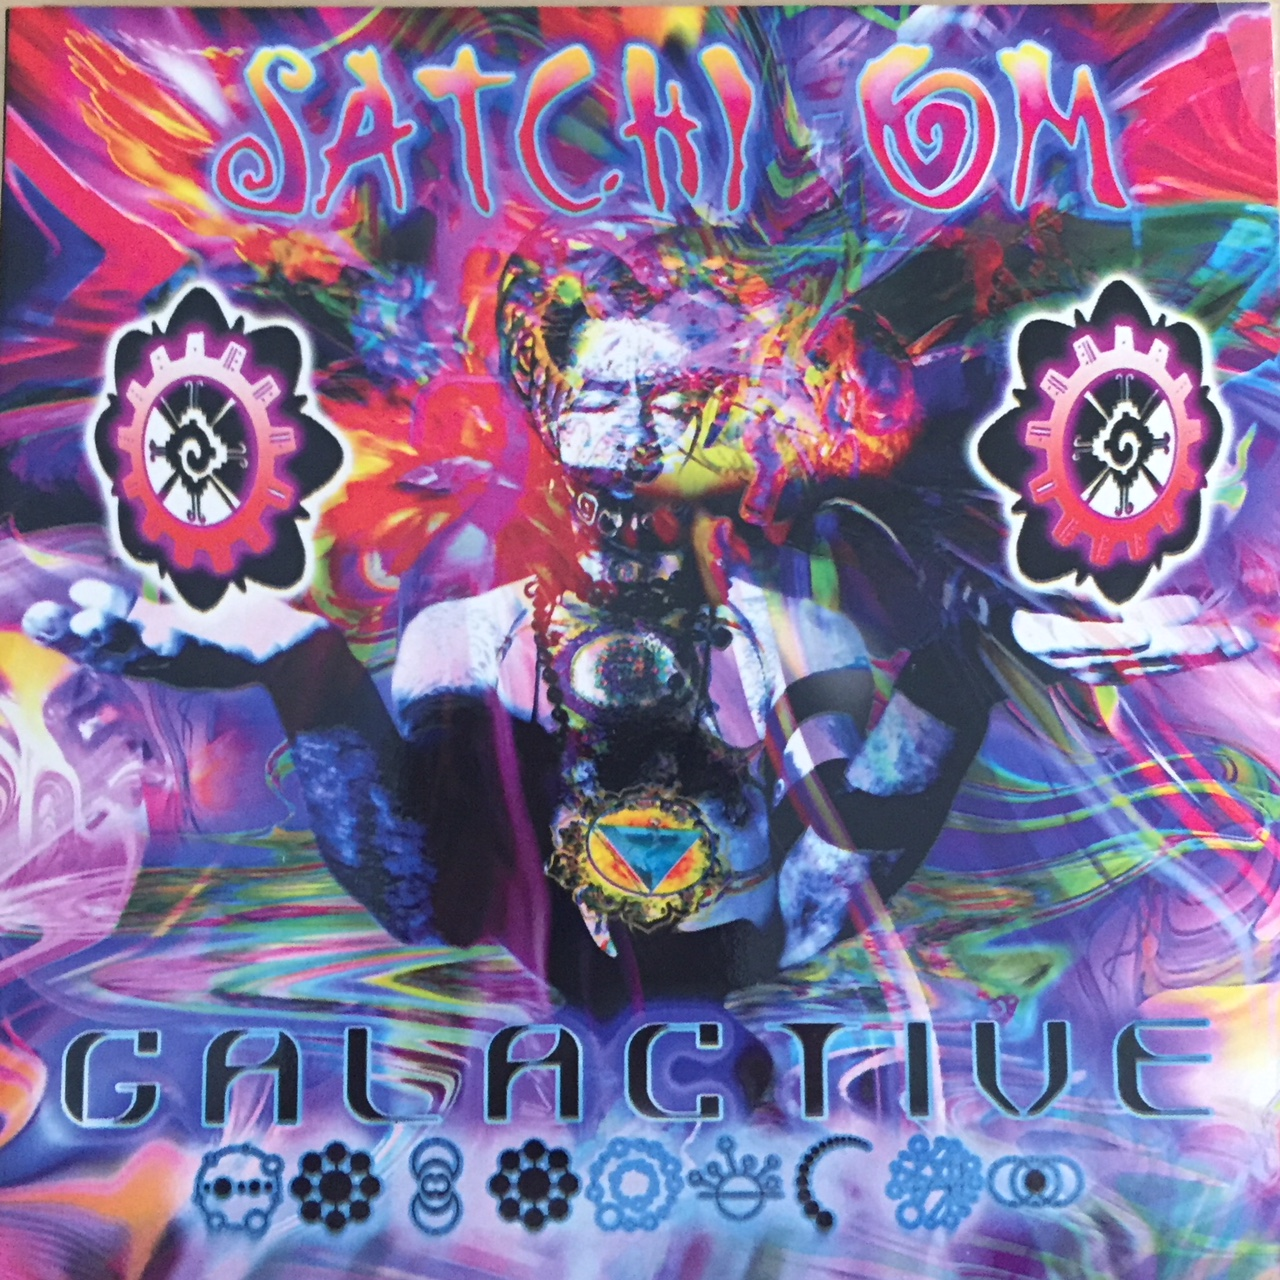 Satchi Om - Galactive